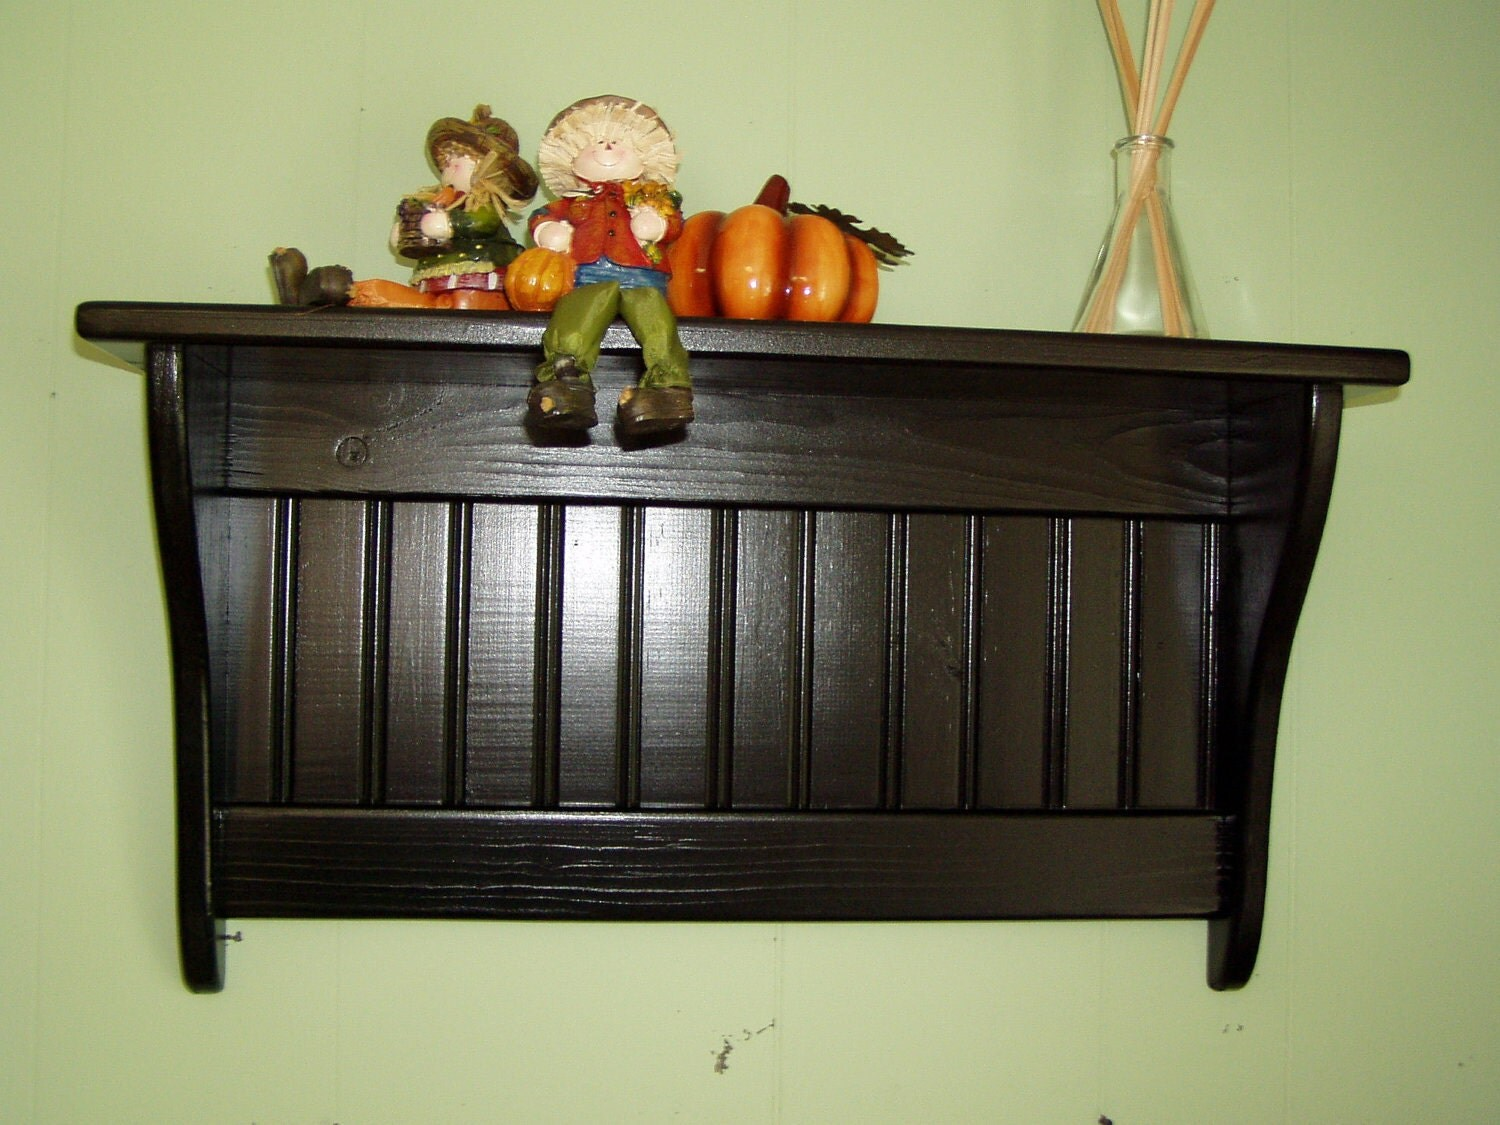 wood wall shelf display 24 inches pine painted. Black Bedroom Furniture Sets. Home Design Ideas